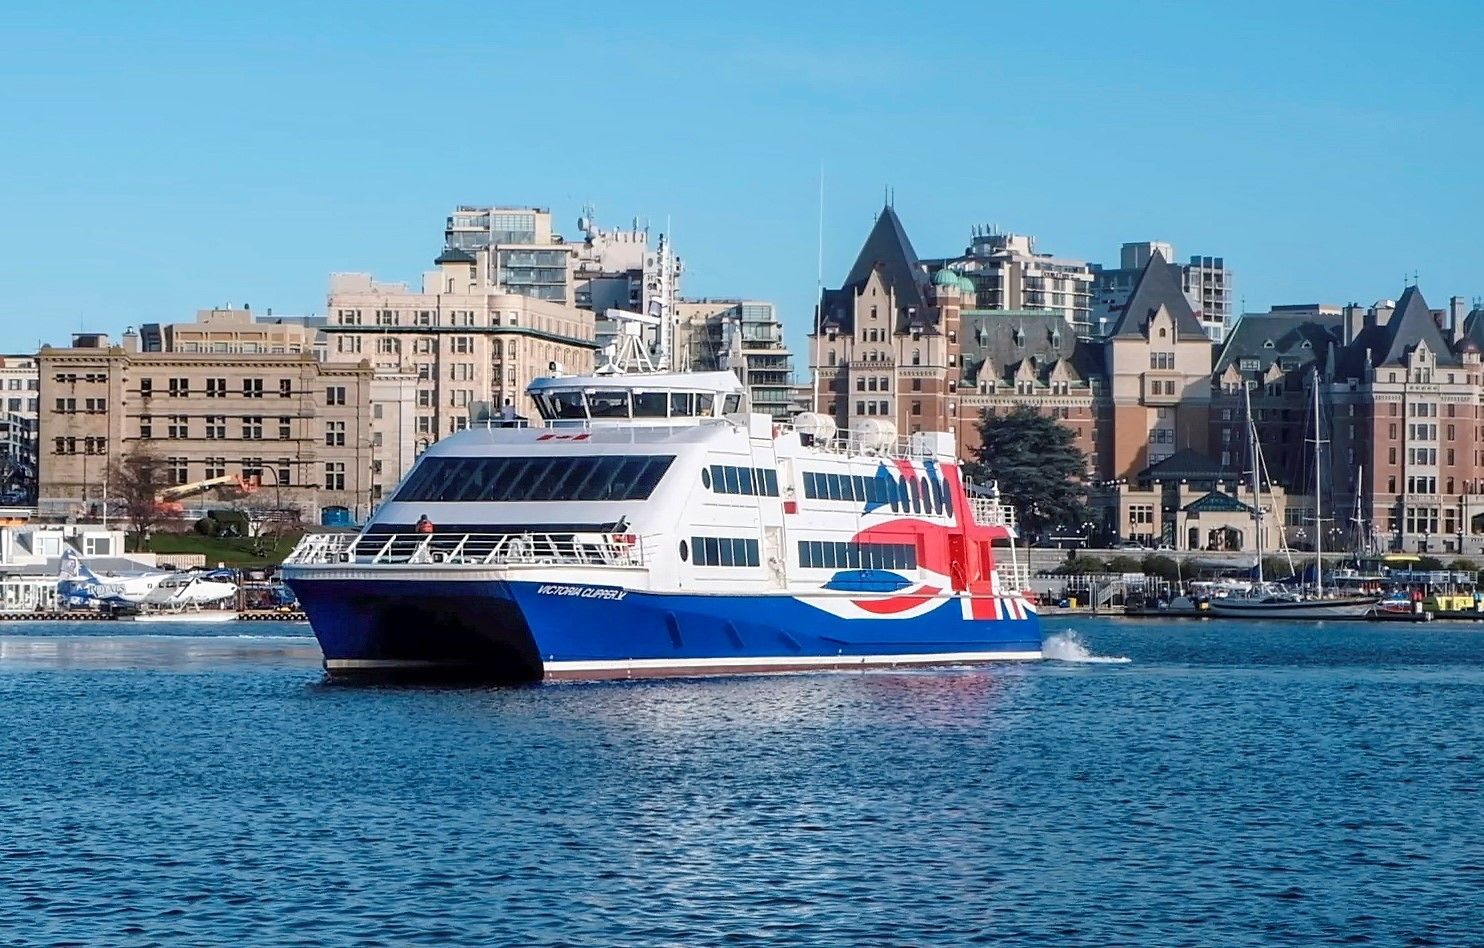 Victoria Clipper ferryboat with city in the background